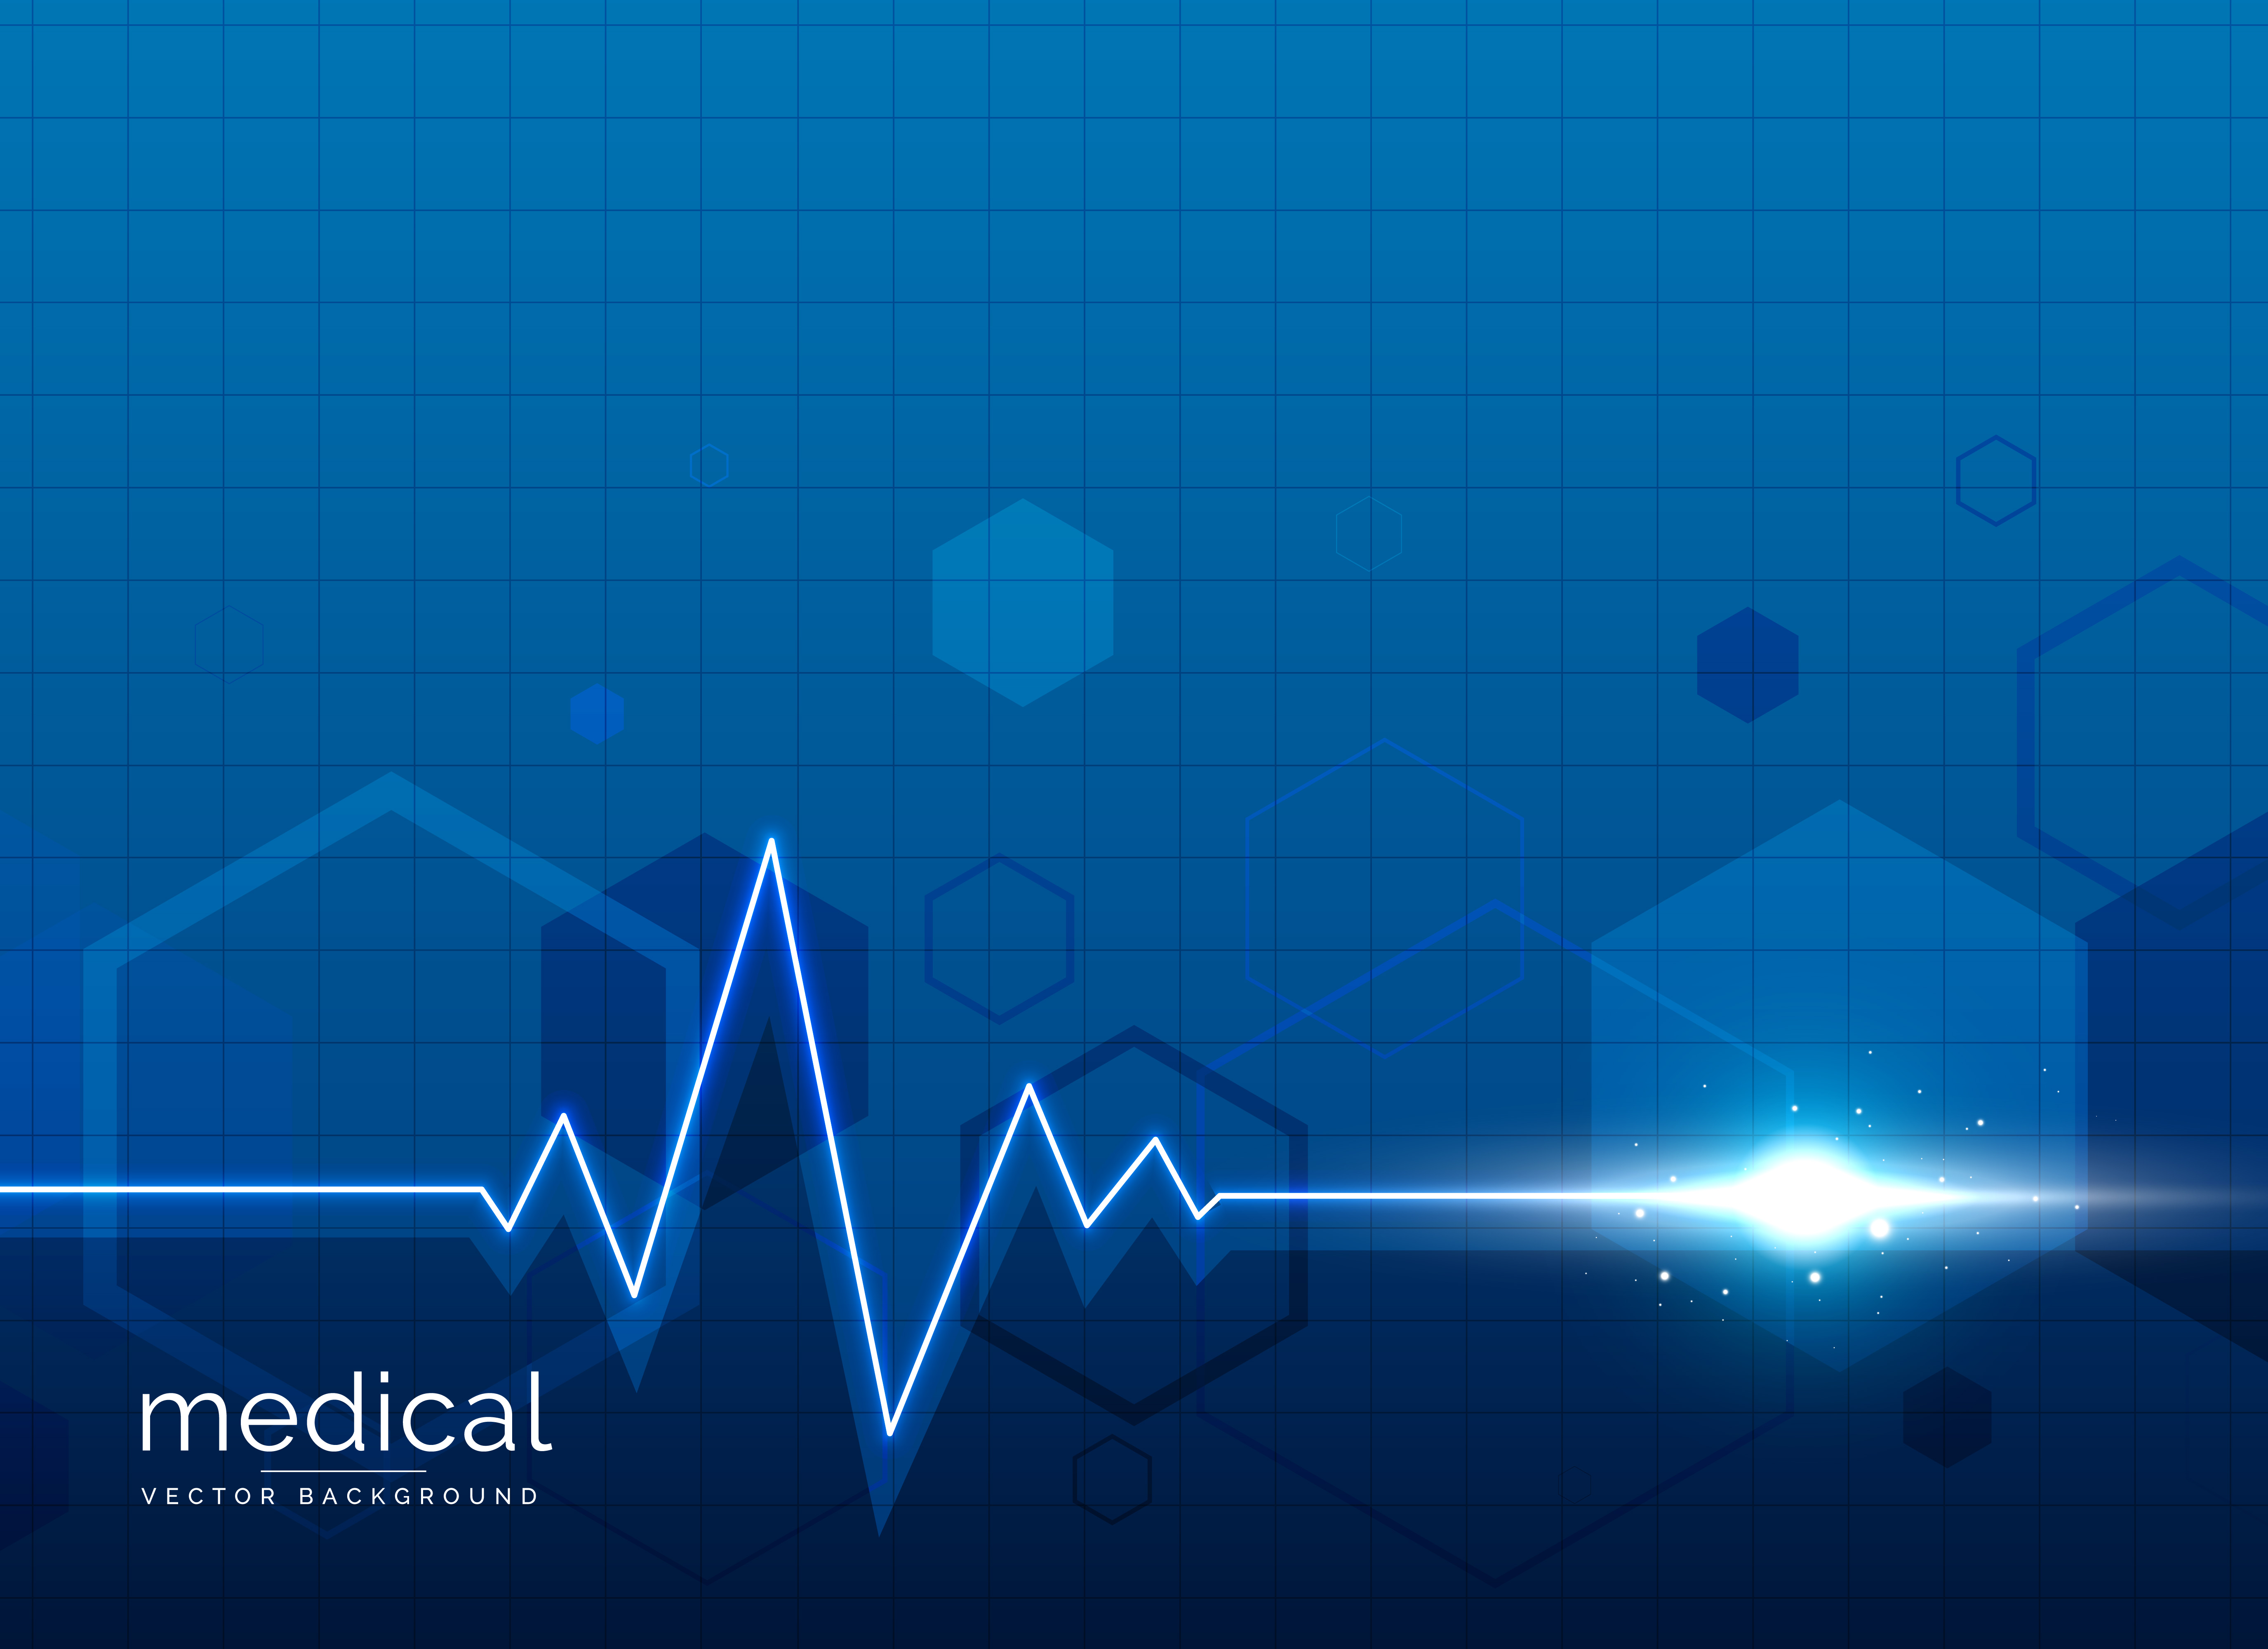 healthcare-medical-background-with-heart-beat-line-vector.jpg